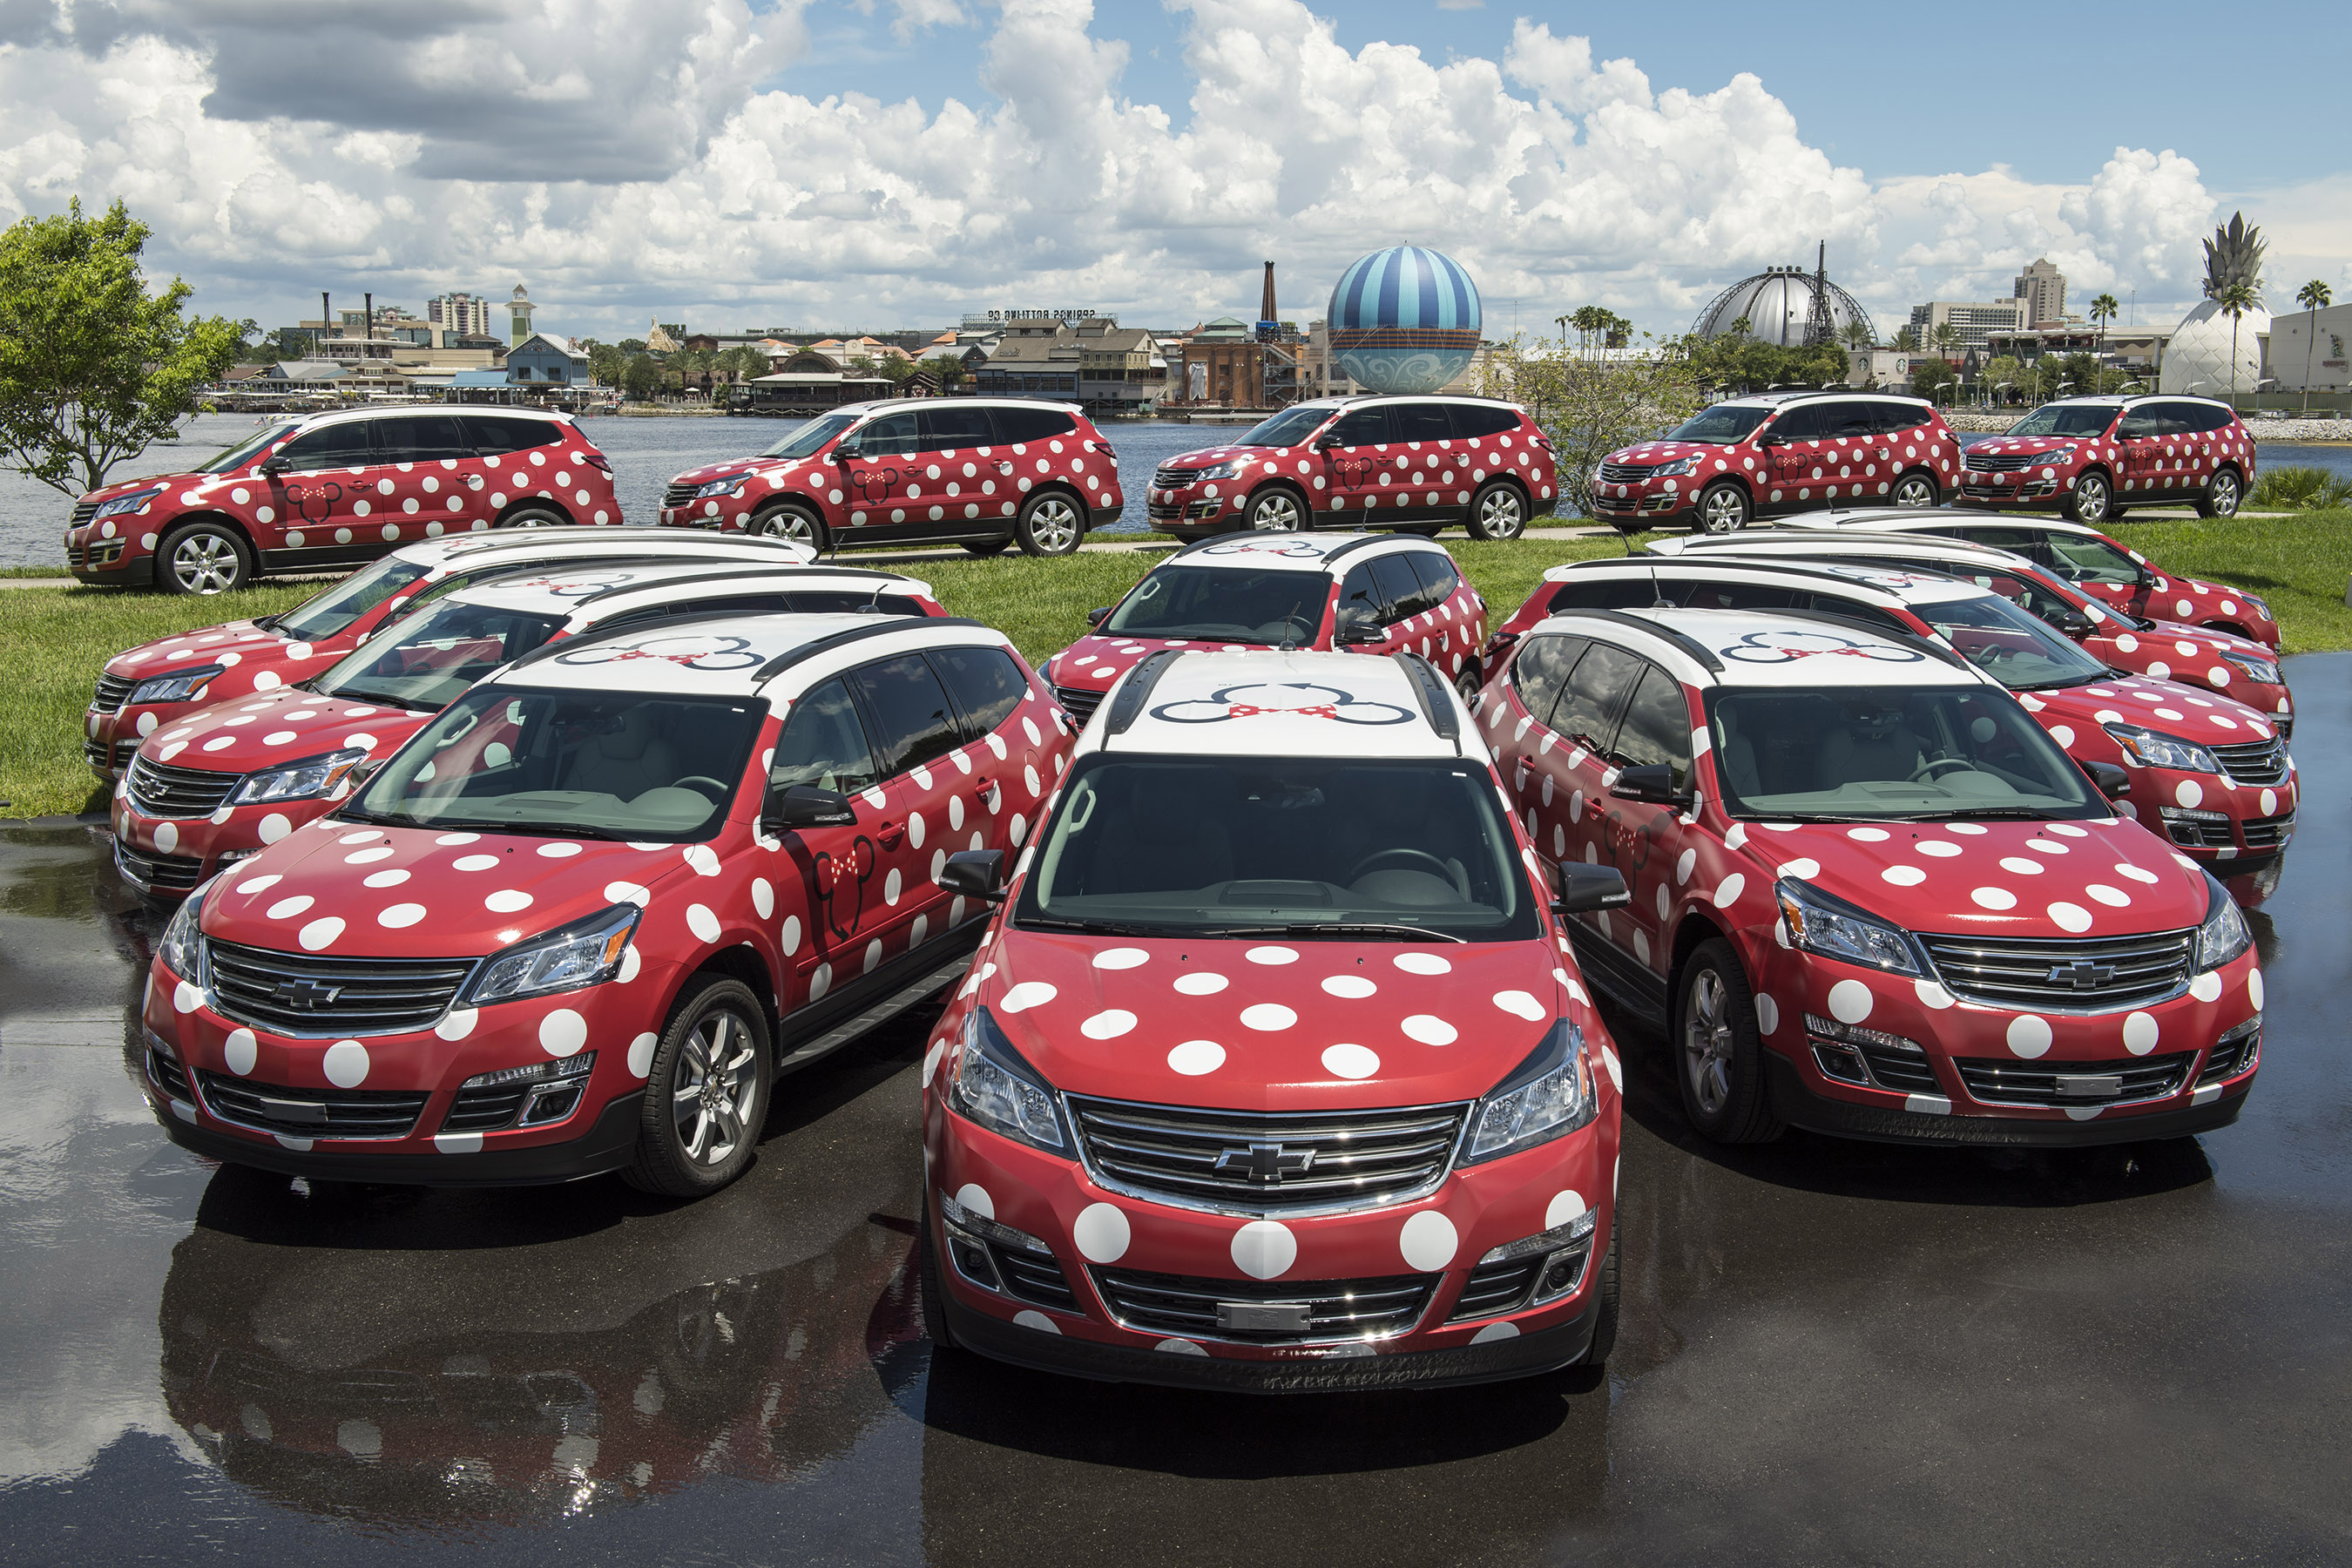 Walt Disney World Resorts Minnie Van